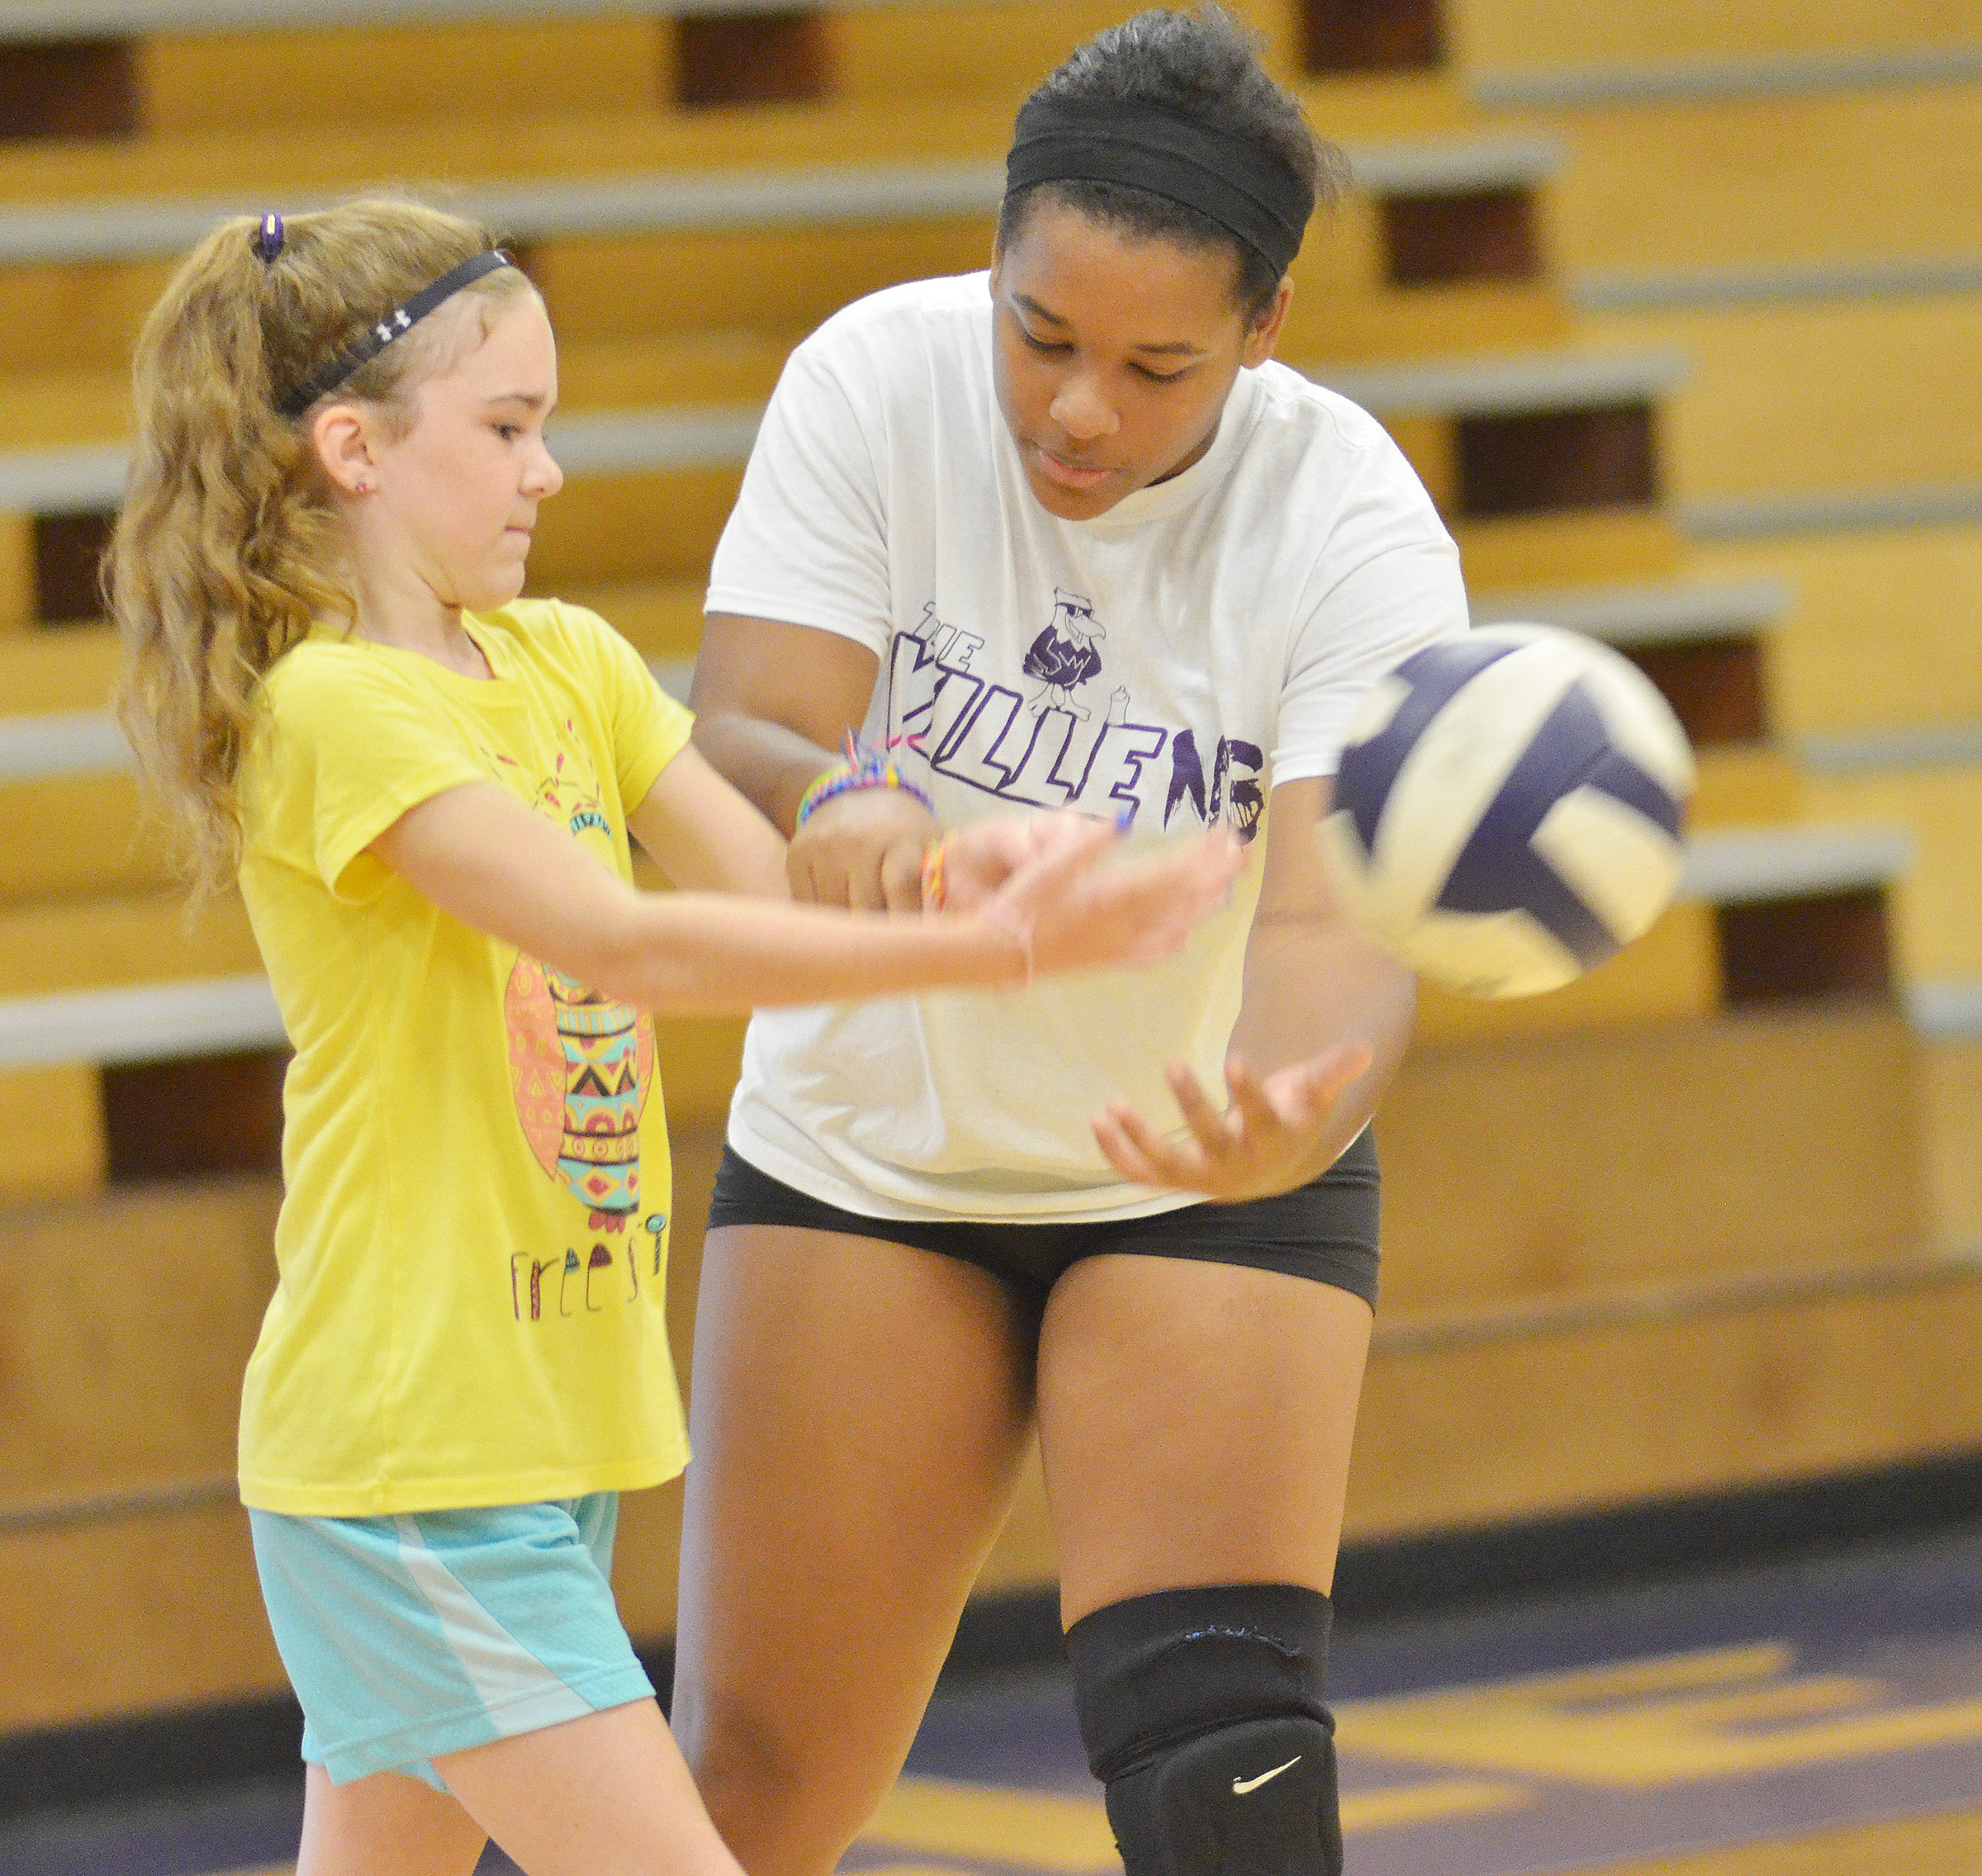 CHS senior Kayla Young helps Alissa Hughes, a fourth-grader at Hodgenville Elementary School, learn to serve.